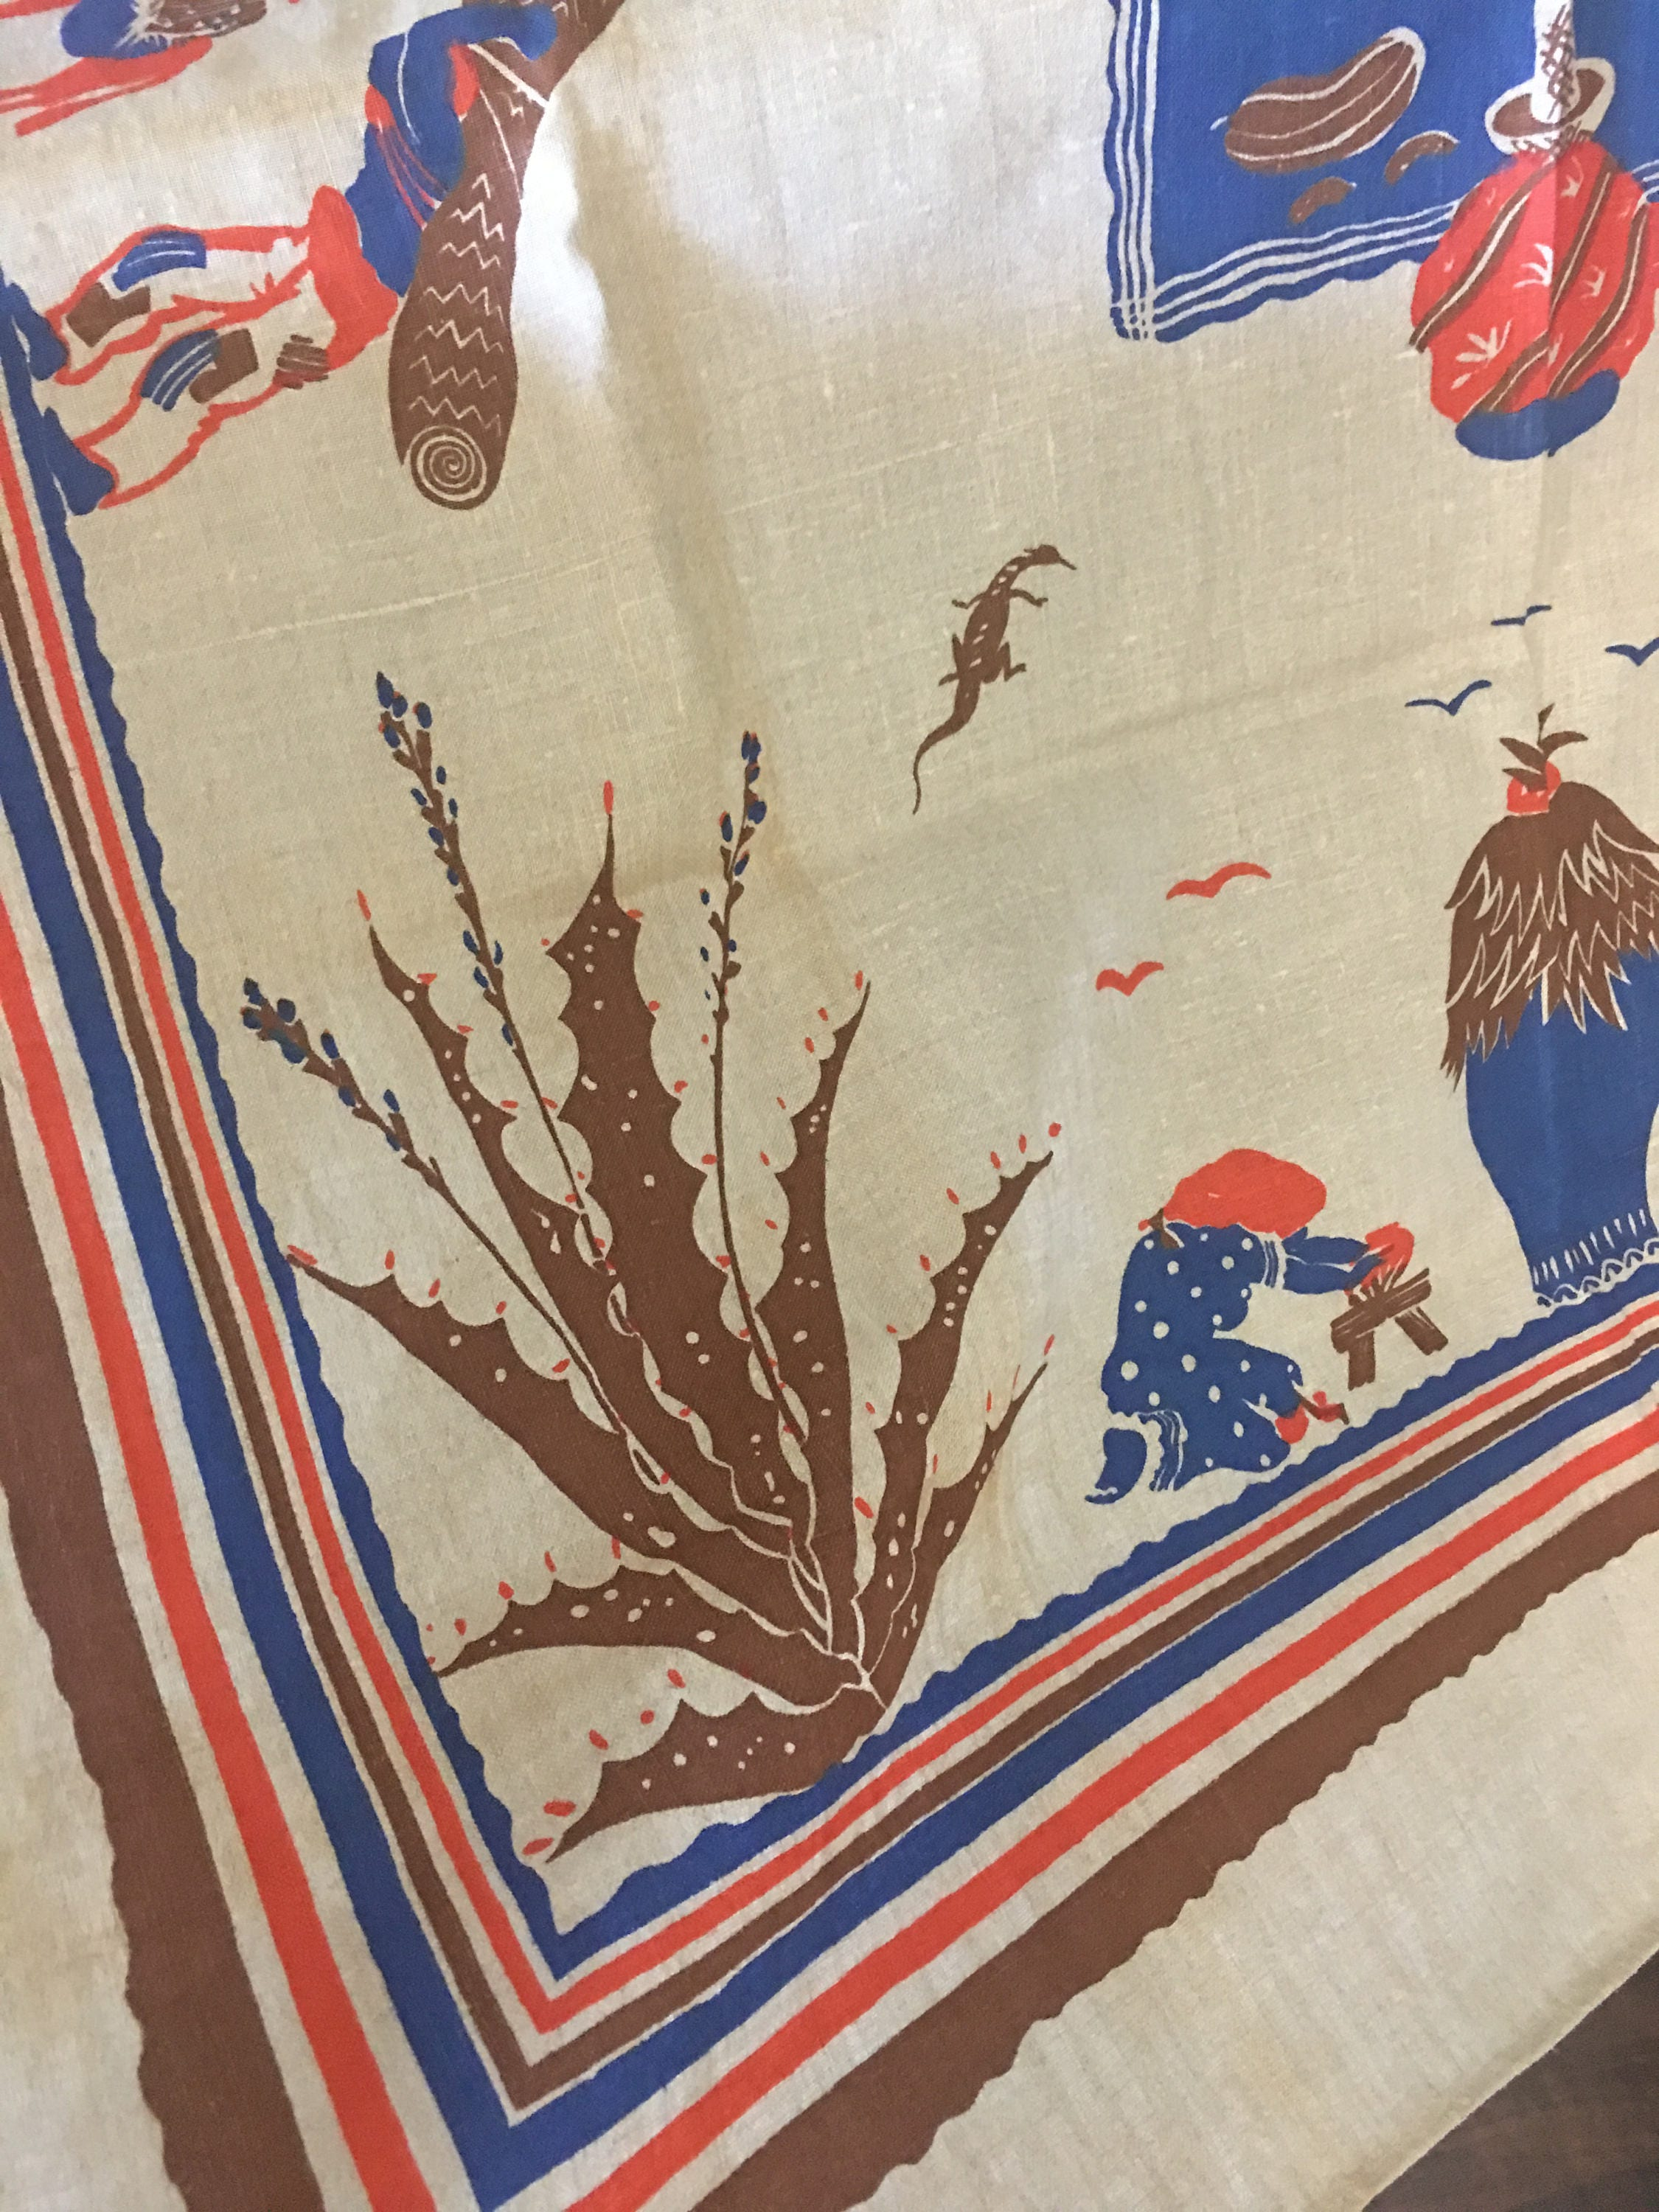 FIESTA Talavera Blue and Red Southwest style vintage tablecloth